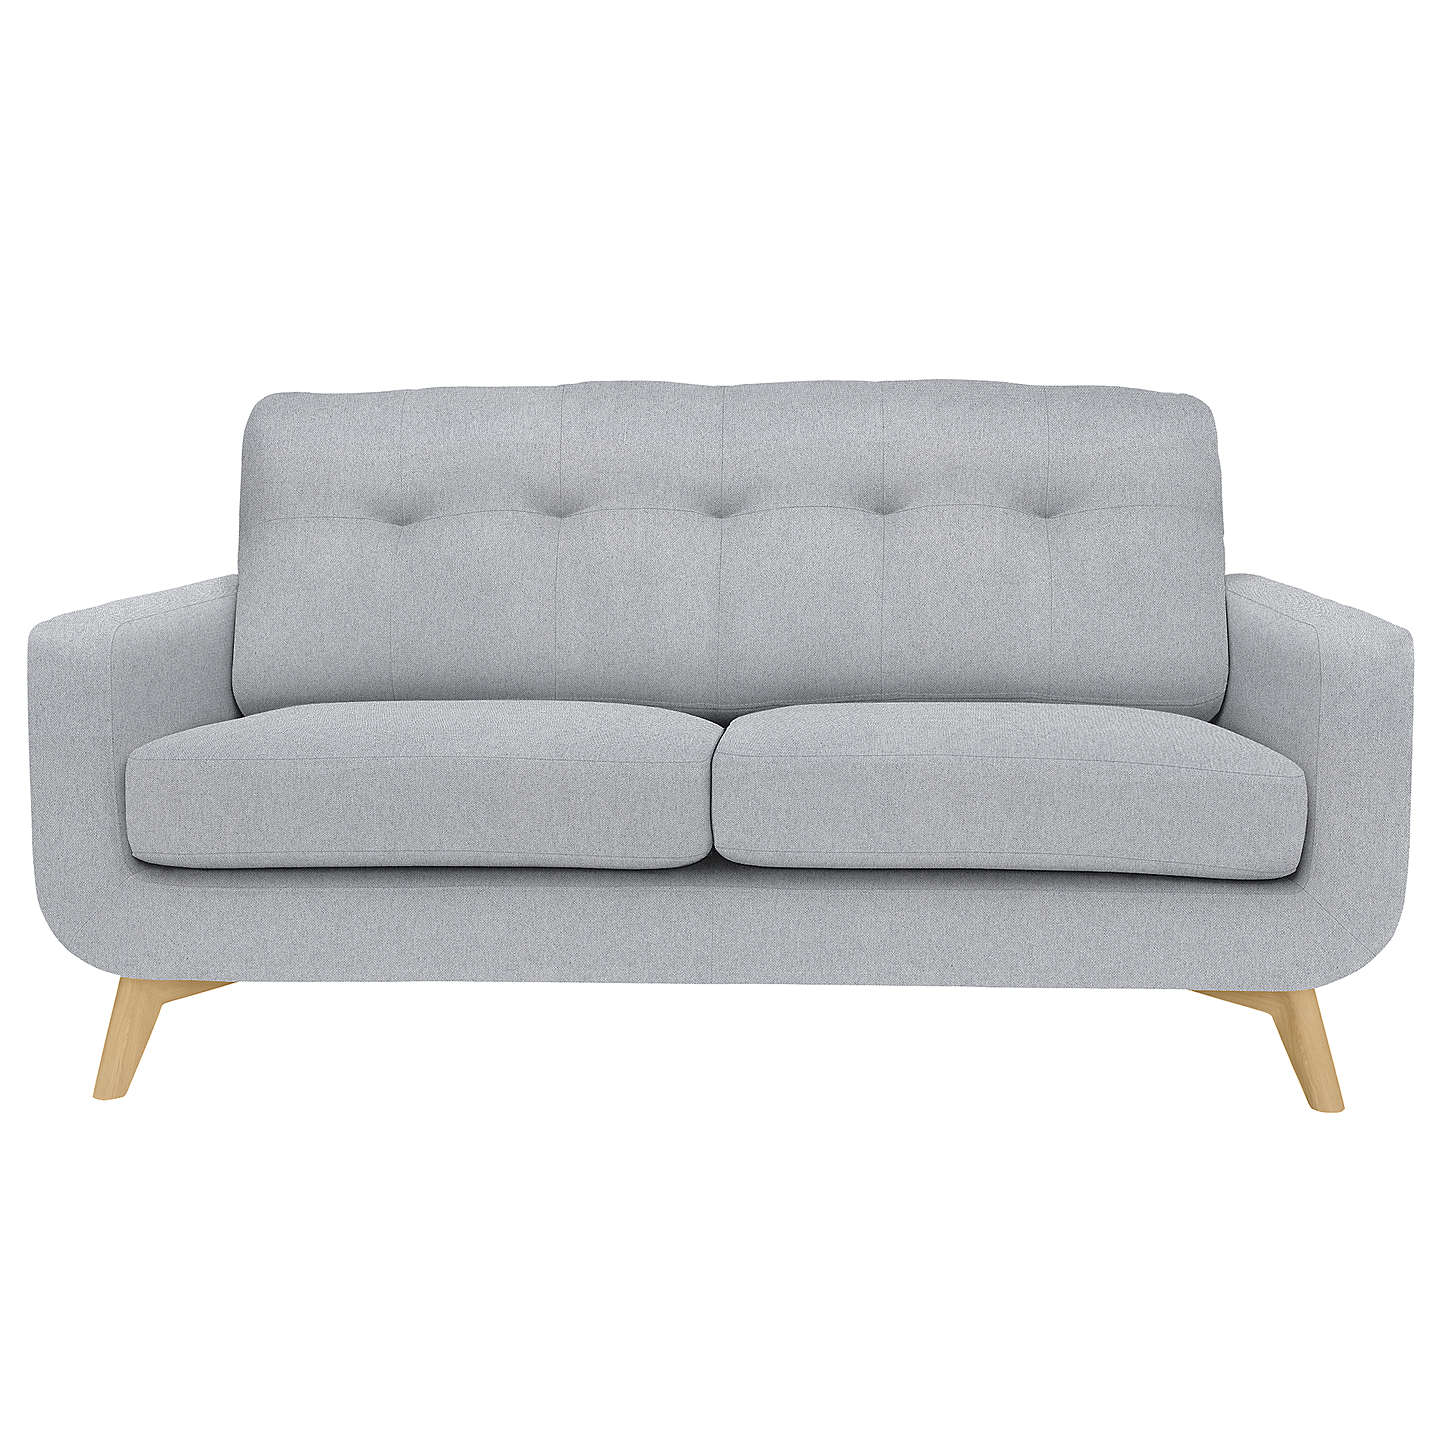 John Lewis Cooper Corner Sofa: John Lewis Barbican Medium 2 Seater Sofa, Dawson Storm At